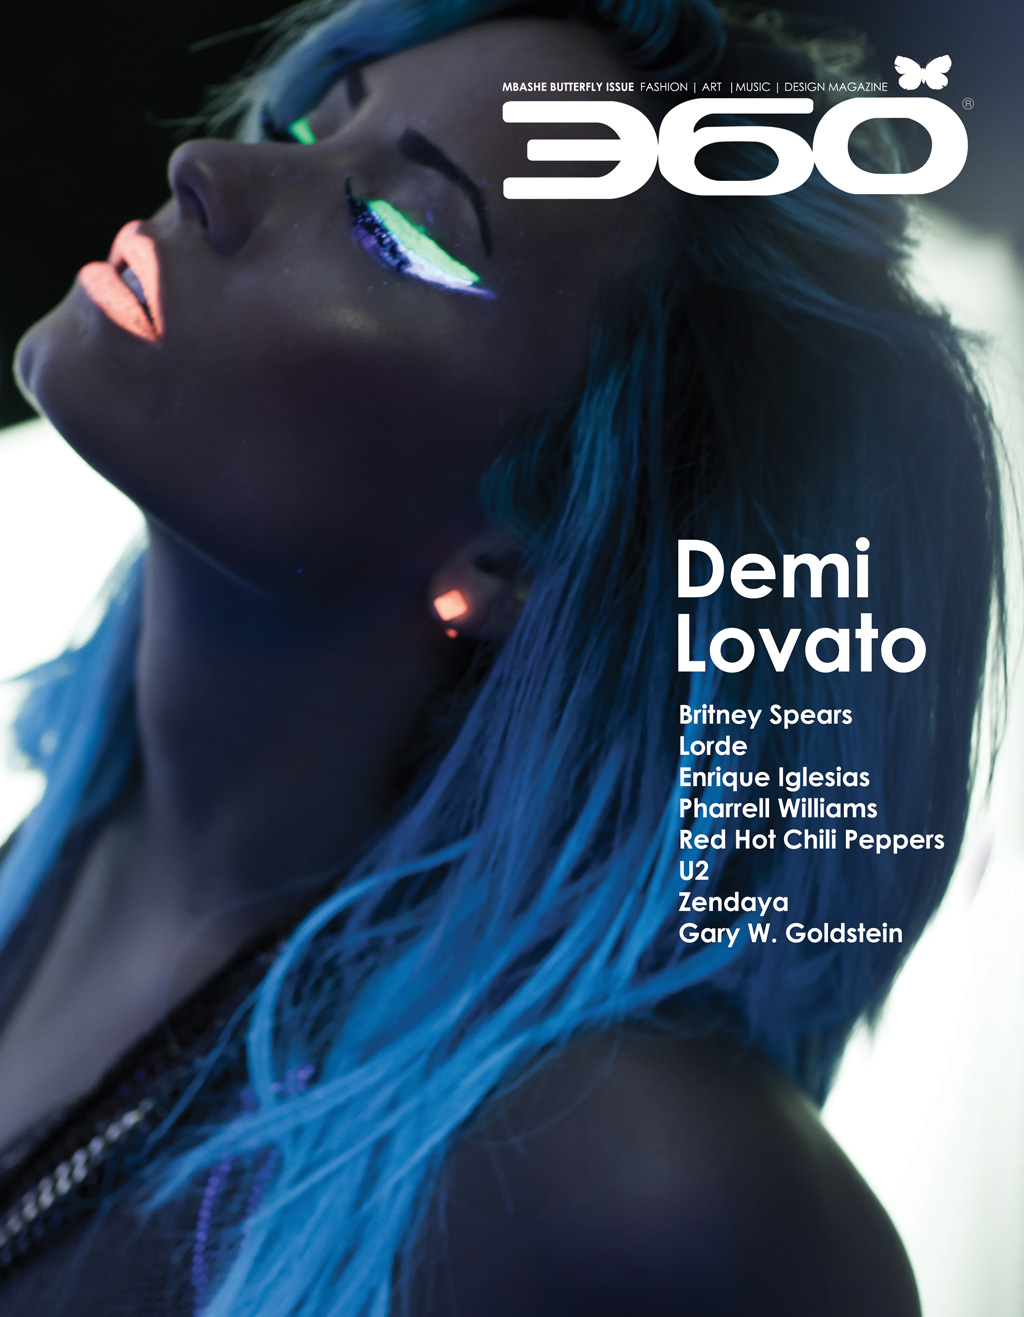 360 Issue 14 – Demi Lovato